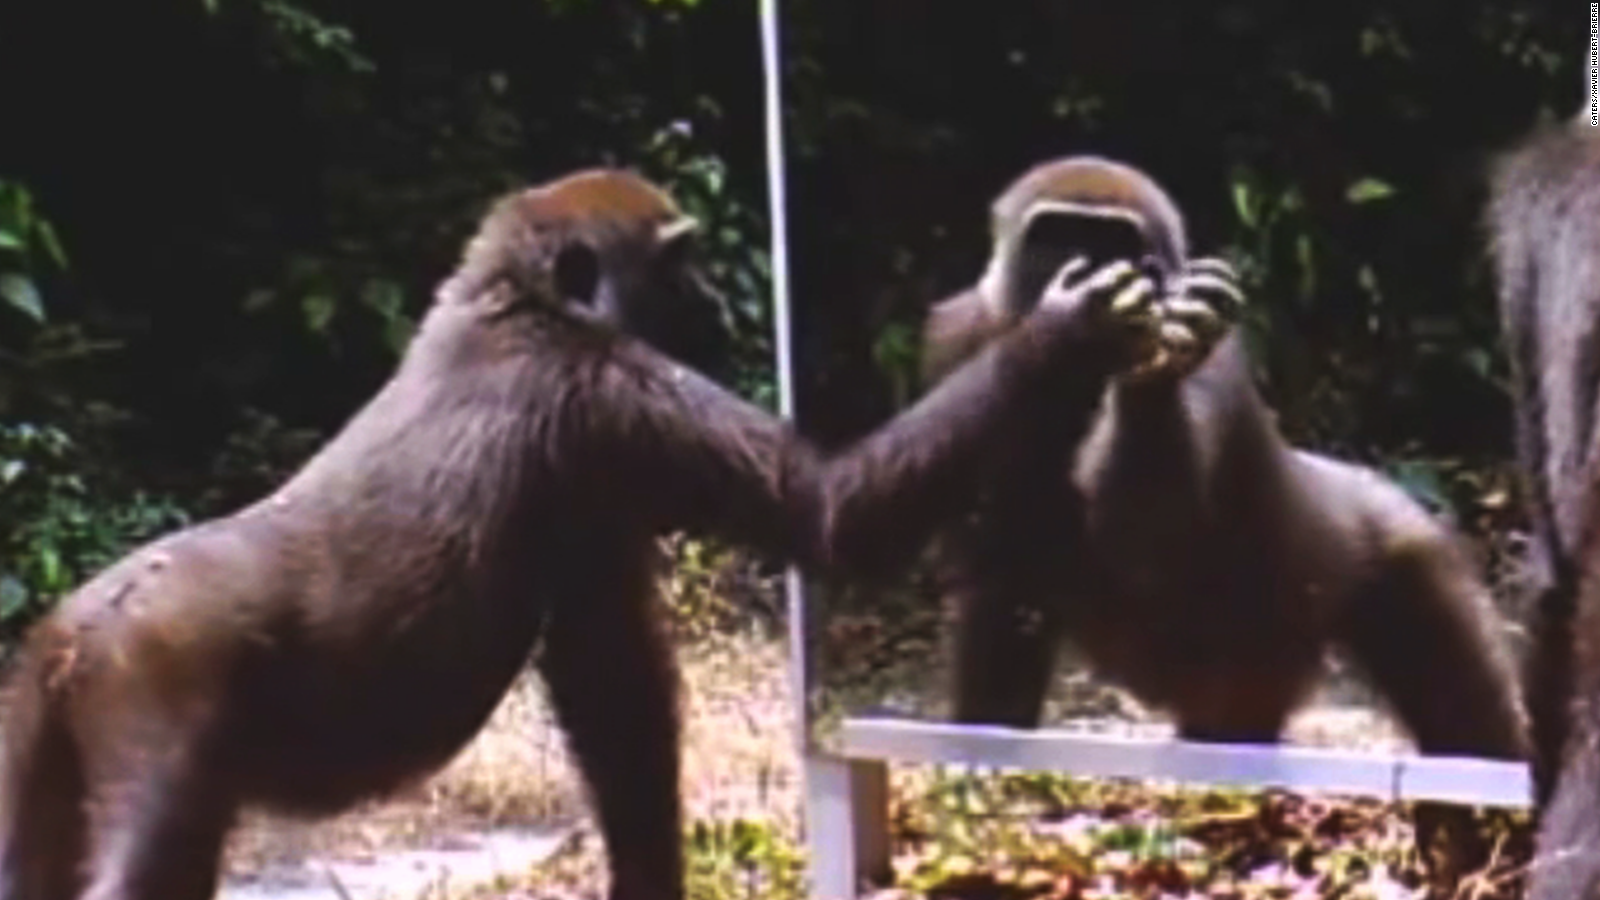 Animals' funny reactions to seeing reflections